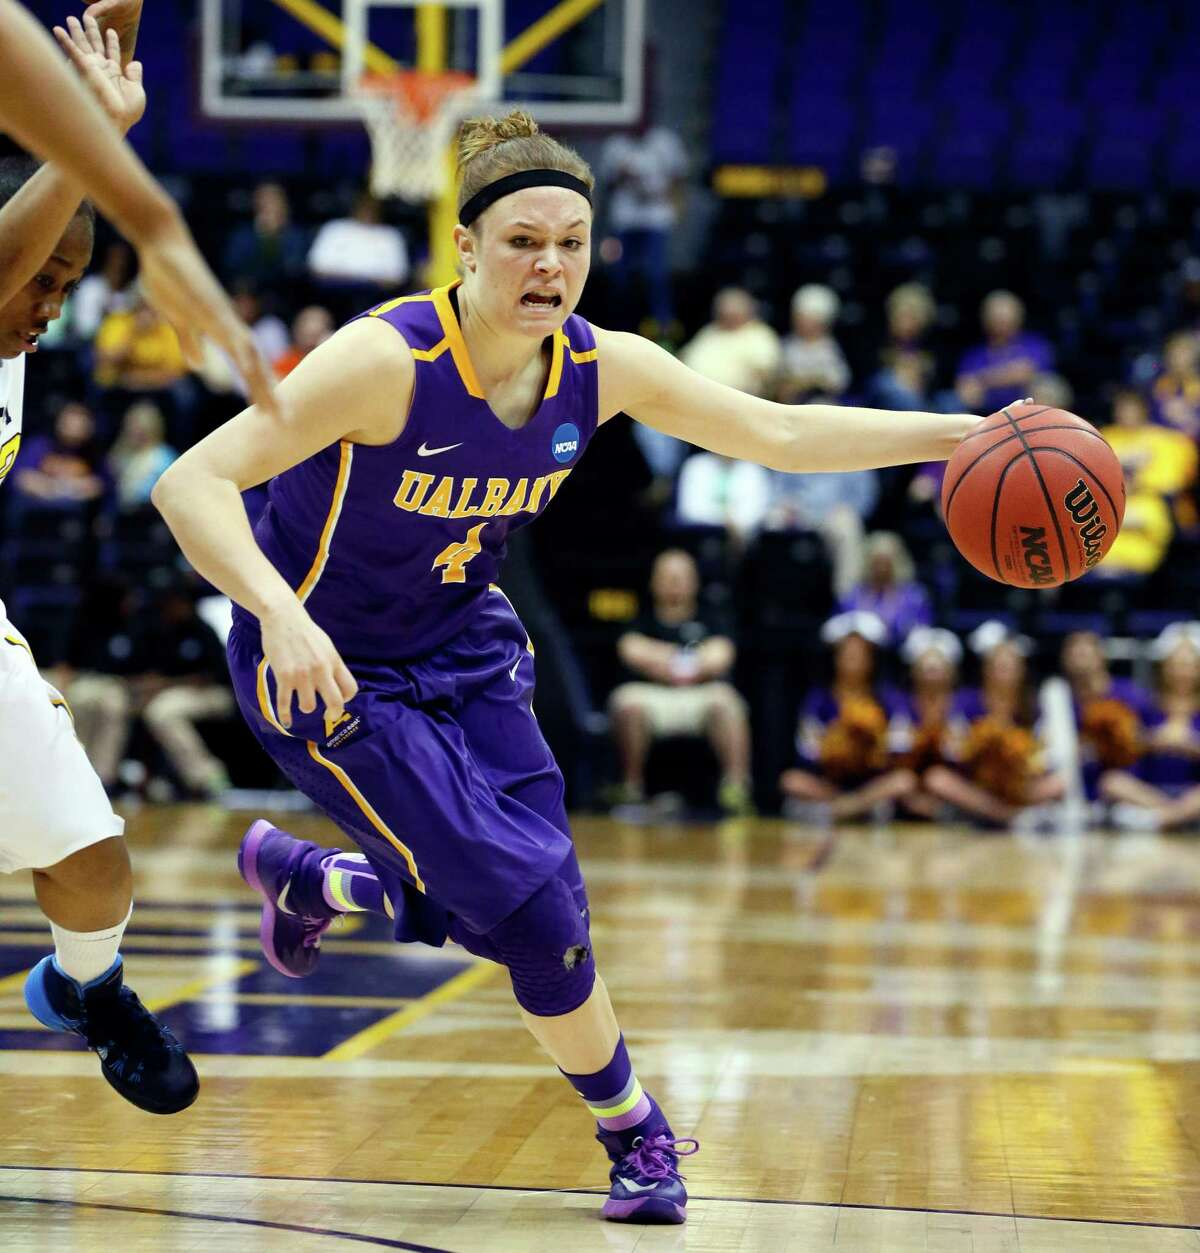 Albany guard Sarah Royals (4) dribbles around West Virginia defenders in the first half of an NCAA college basketball first-round tournament game on Sunday, March 23, 2014, in Baton Rouge, La. (AP Photo/Rogelio V. Solis) ORG XMIT: LARS115